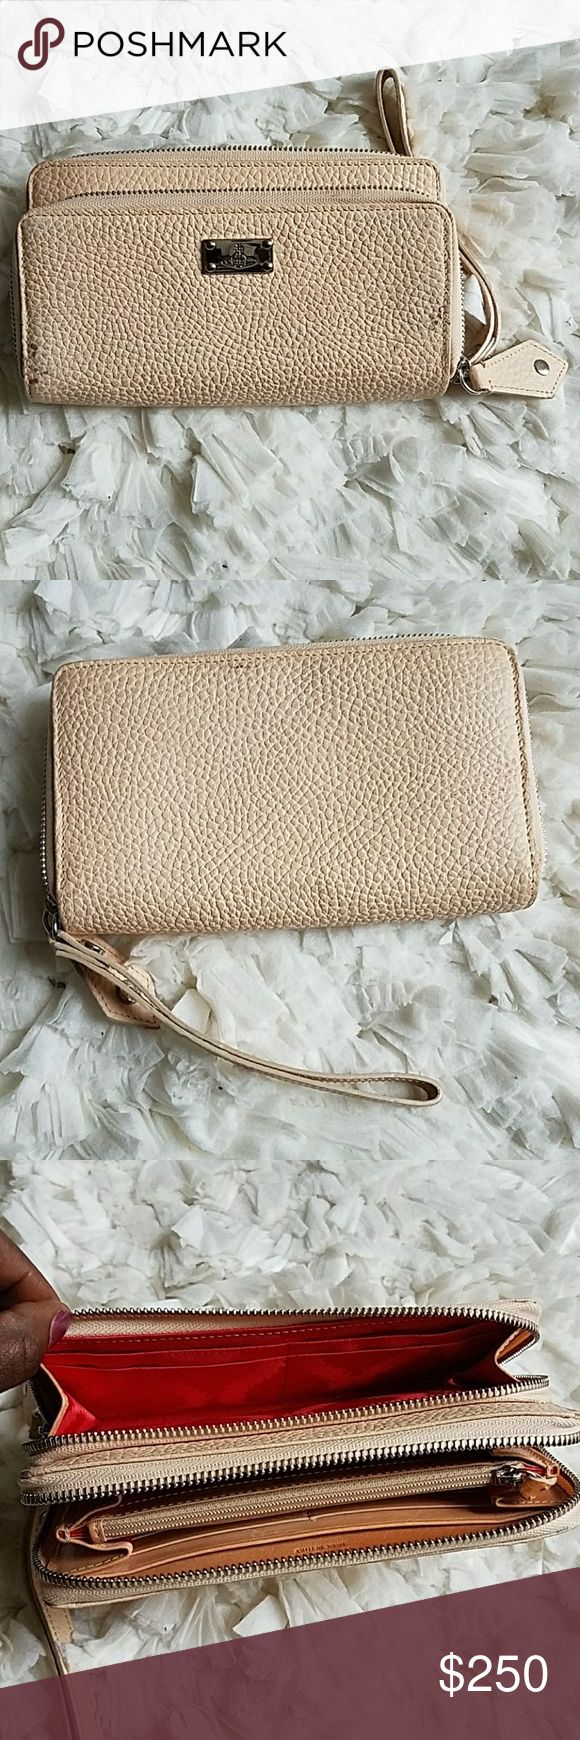 "GORGEOUS Vivienne Westwood Wrislet/Wallet 4.5"" × 7.5"" x 1.5"" Cream textured leather Double zip wallet cassis 8-card slot in small single-compartment  12-card slot in large 5-compartment  Original $742, bought on sale $325 Signs of natural oxidation on 100% leather, but exterior still in good condition. Pic 8 shows the wear on wallet exterior. Interior is in excellent condition & mark/stain free.   I am totally obsessed with this wallet! Firm price!   🛇Holds 🛇Trades 🛇Offers  YES AUTHENTIC…"